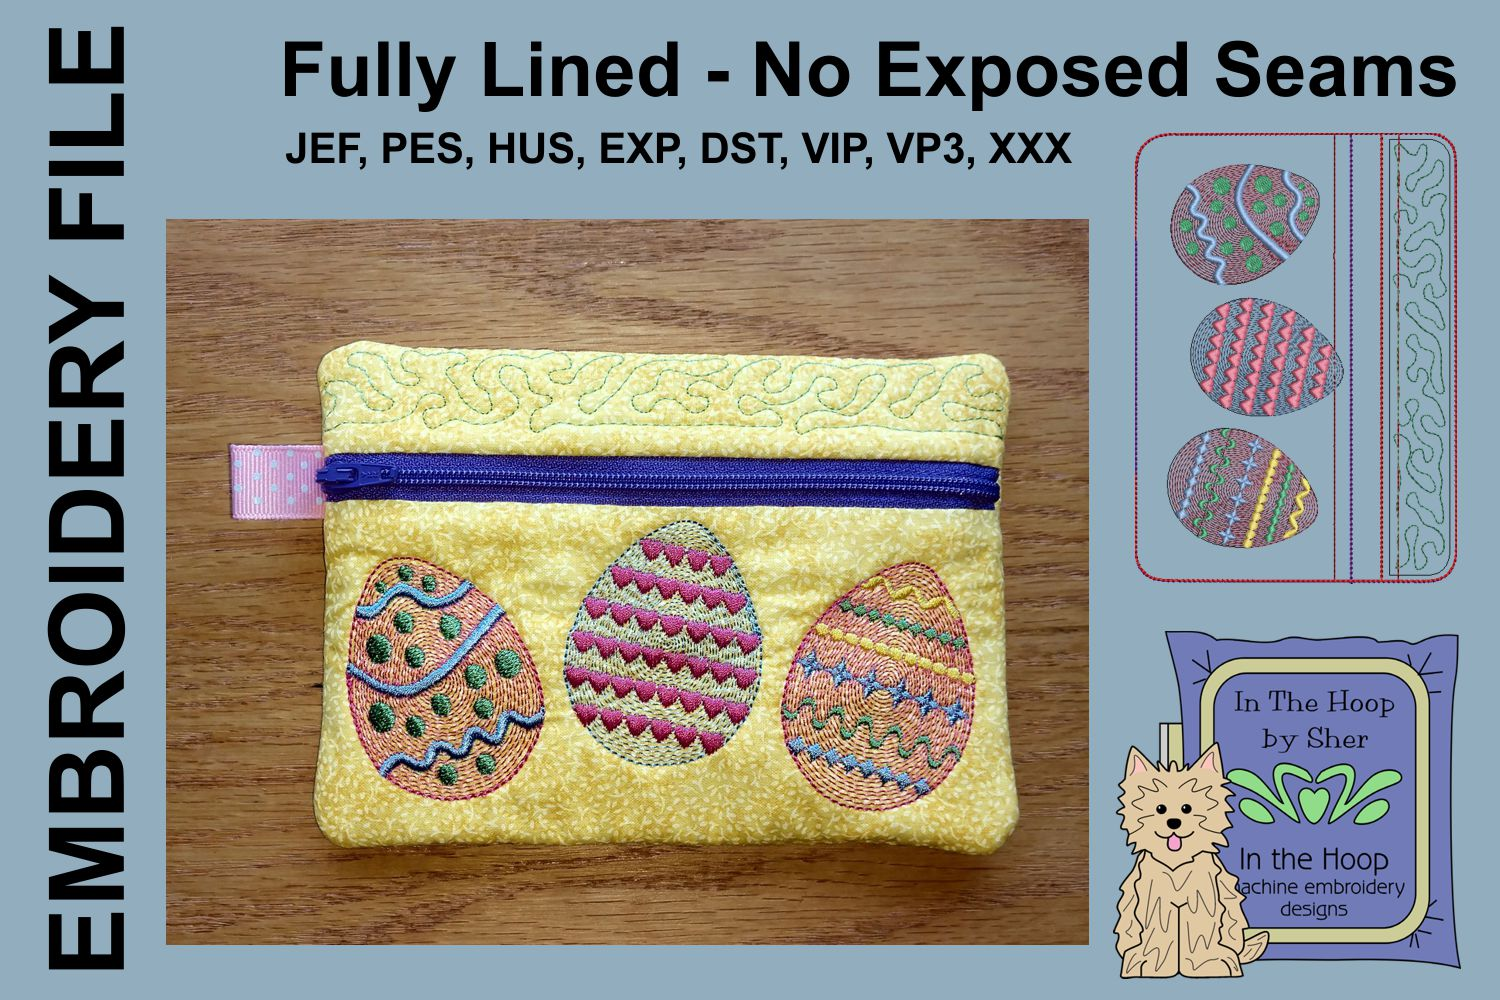 ITH Easter Eggs Zipper Bag - Fully Lined, 5X7 HOOP example image 1